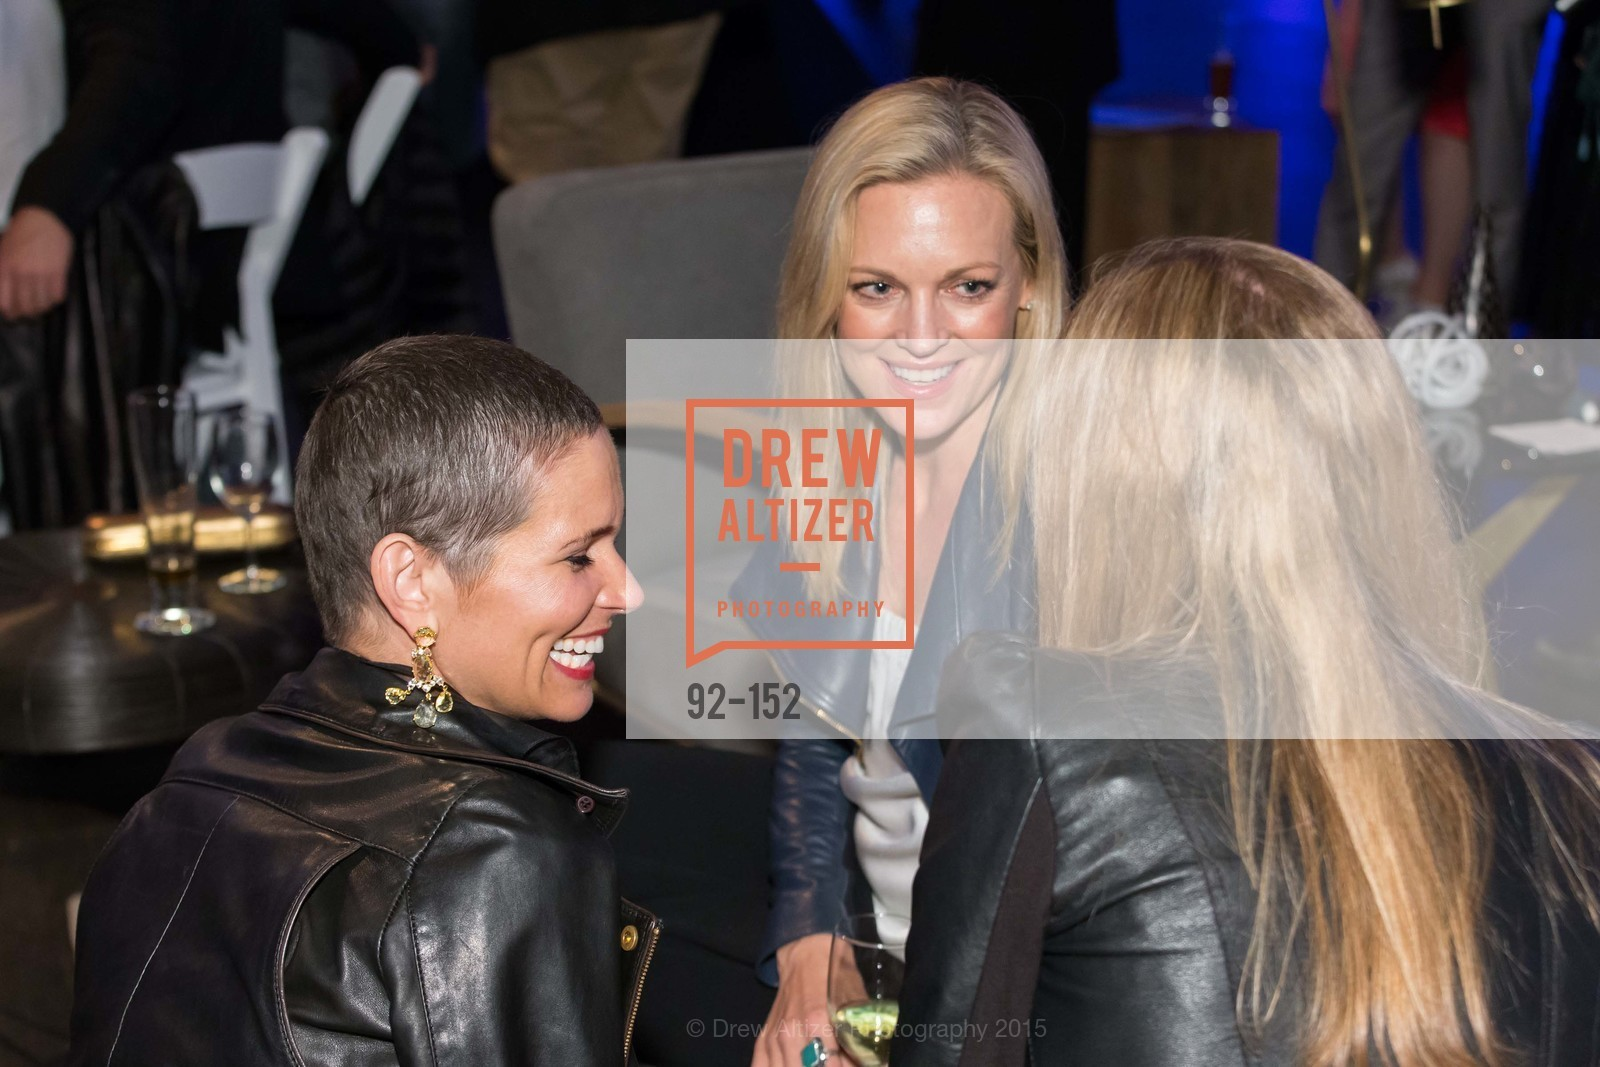 Susan Moody, Maja Smith, Headlands Center for the Arts Benefit Auction, Fort Mason Festival, Pavilon, June 2nd, 2015,Drew Altizer, Drew Altizer Photography, full-service agency, private events, San Francisco photographer, photographer california